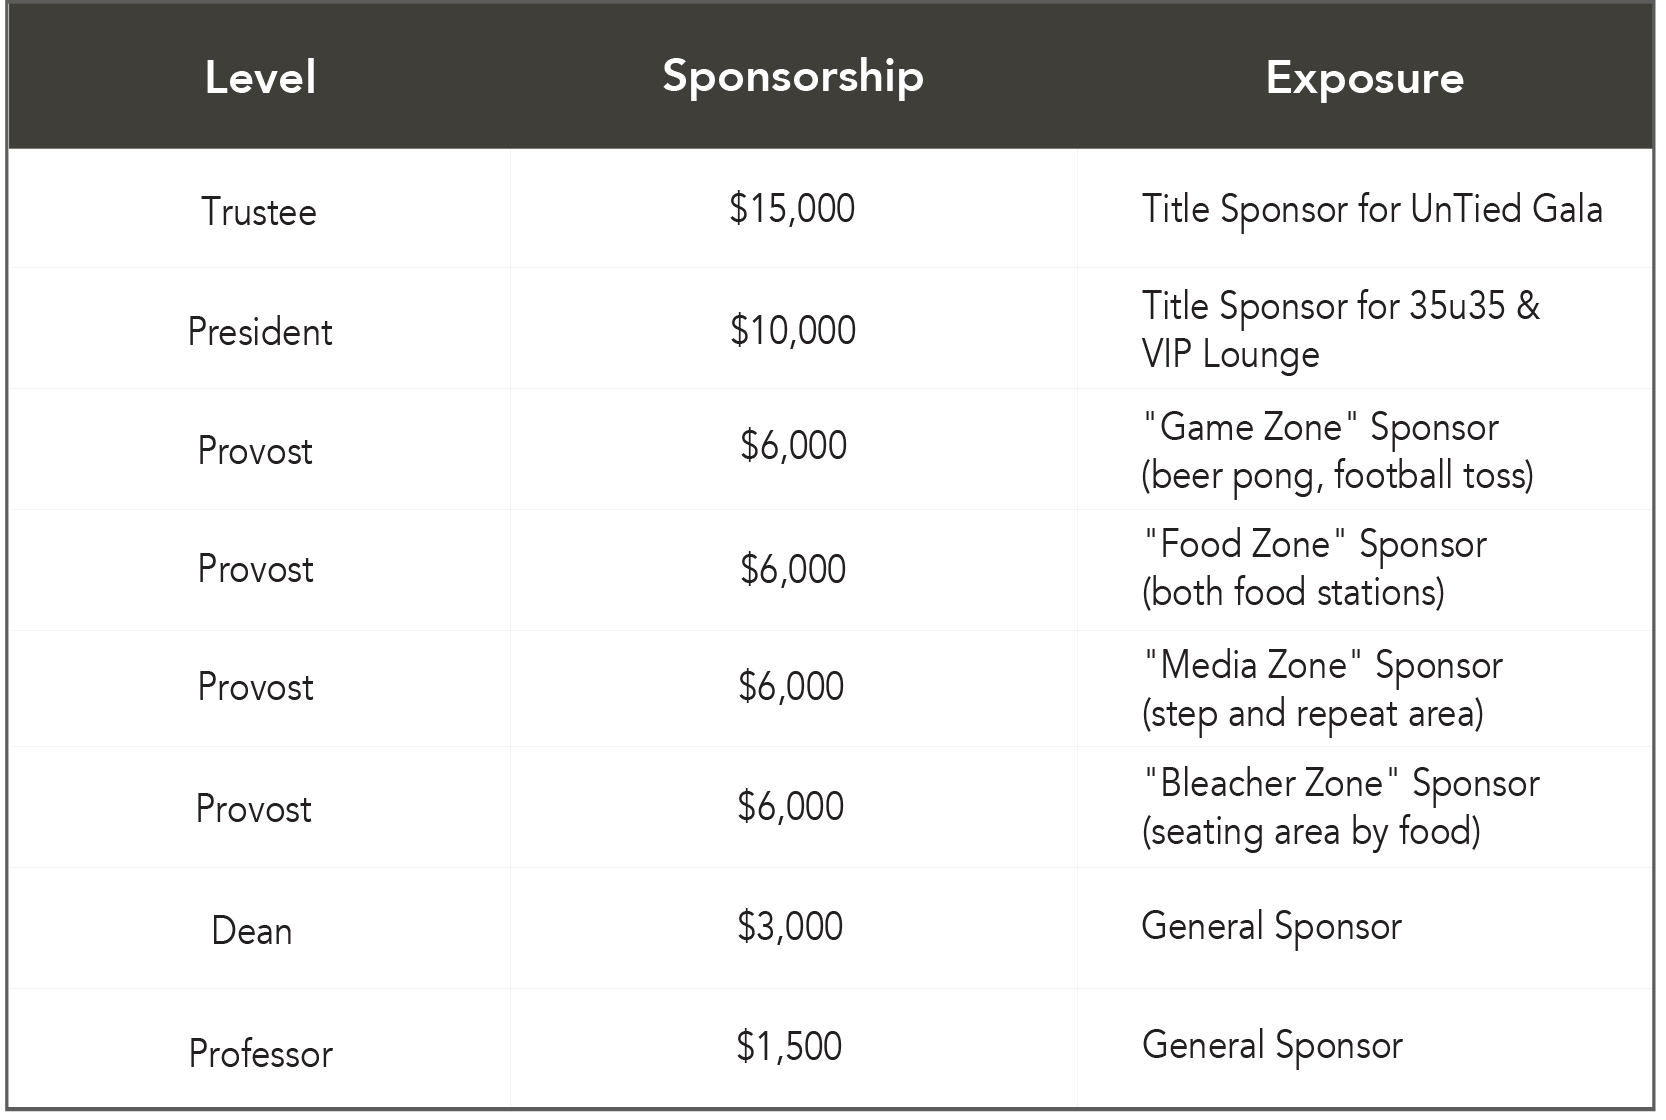 2018_UnTiedGala_SponsorshipForm-General-2.png